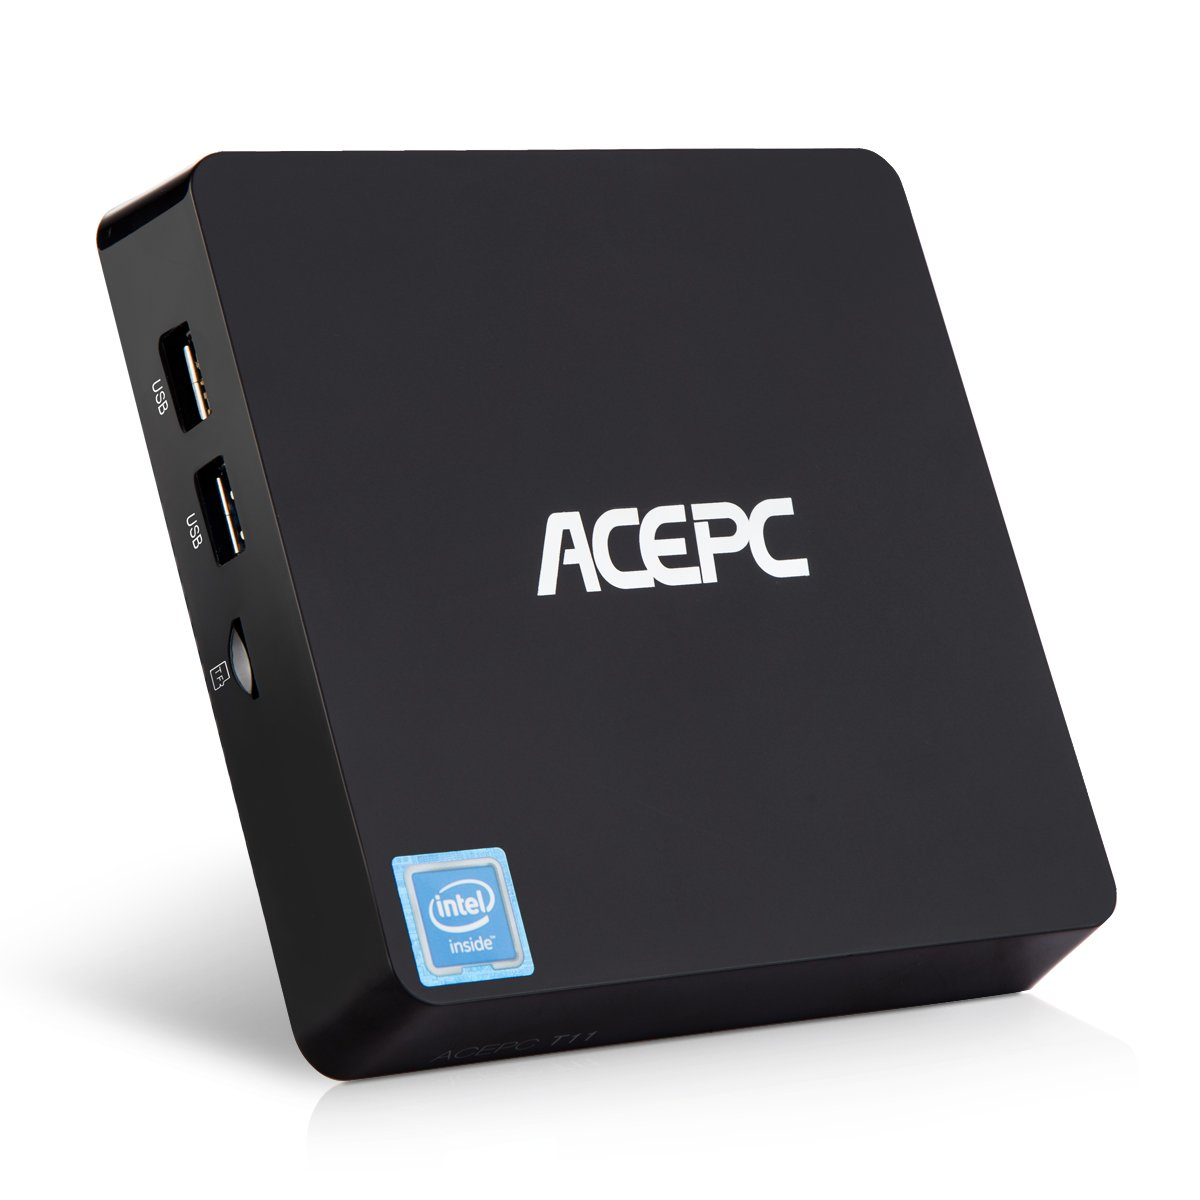 ACEPC T11, Micro PC Mini Ordinateur de Bureau Intel Cherry Trail sans Ventilateur Windows 10 Home/Pro (64 Bits) [4 Go DDR / 64 Go EMMC/Support 2.5' SSD/M SSD SATA/WiFi Dual Band / 4K]